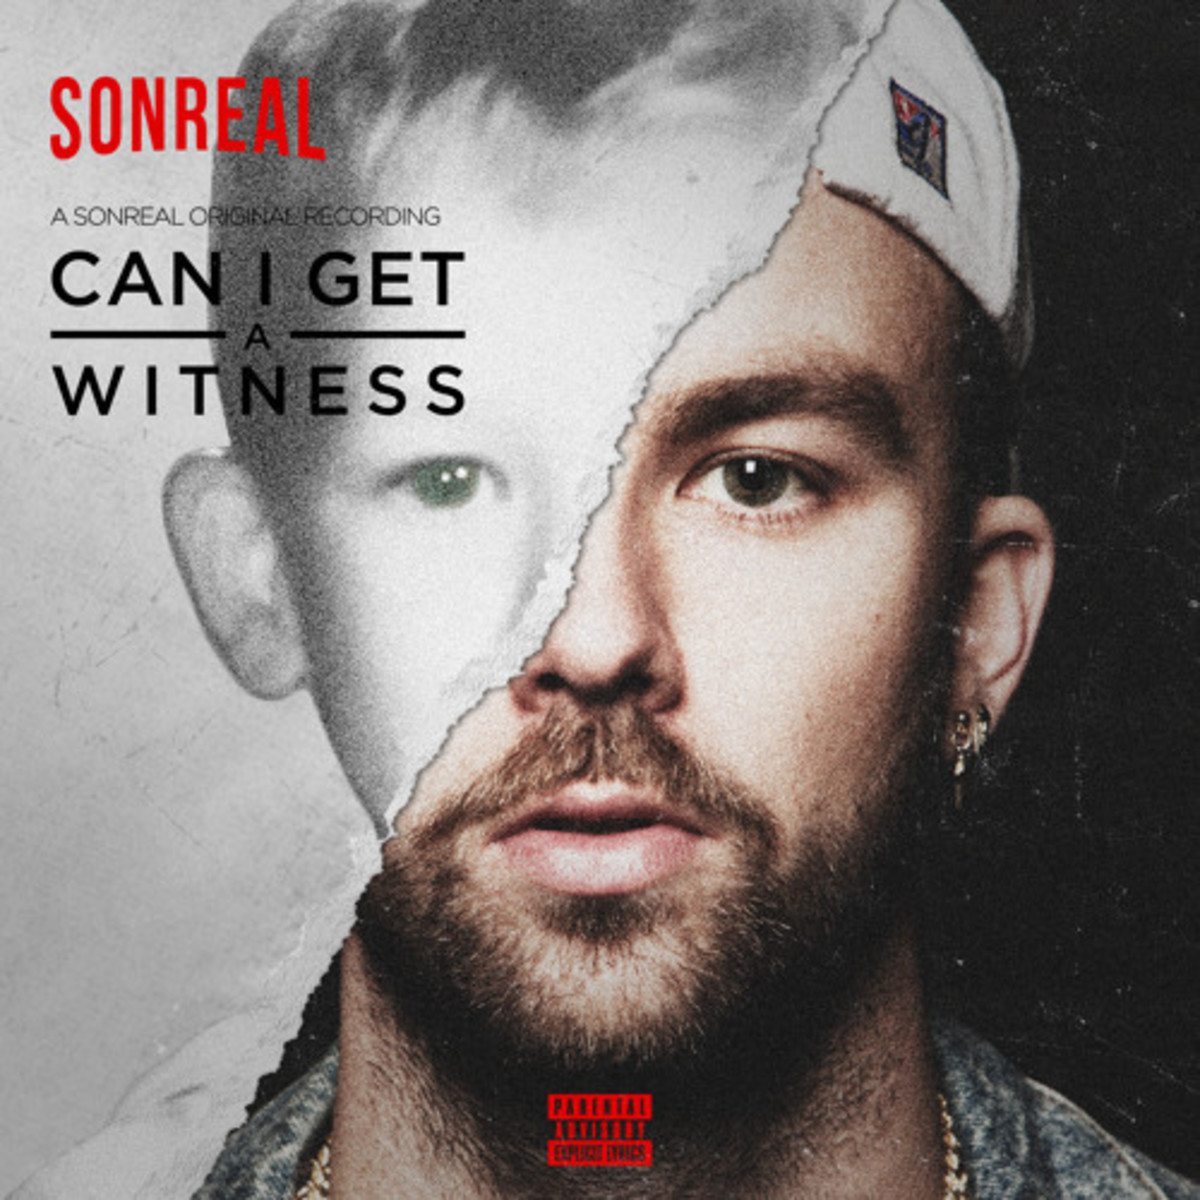 sonreal-can-i-get-a-witness.jpg